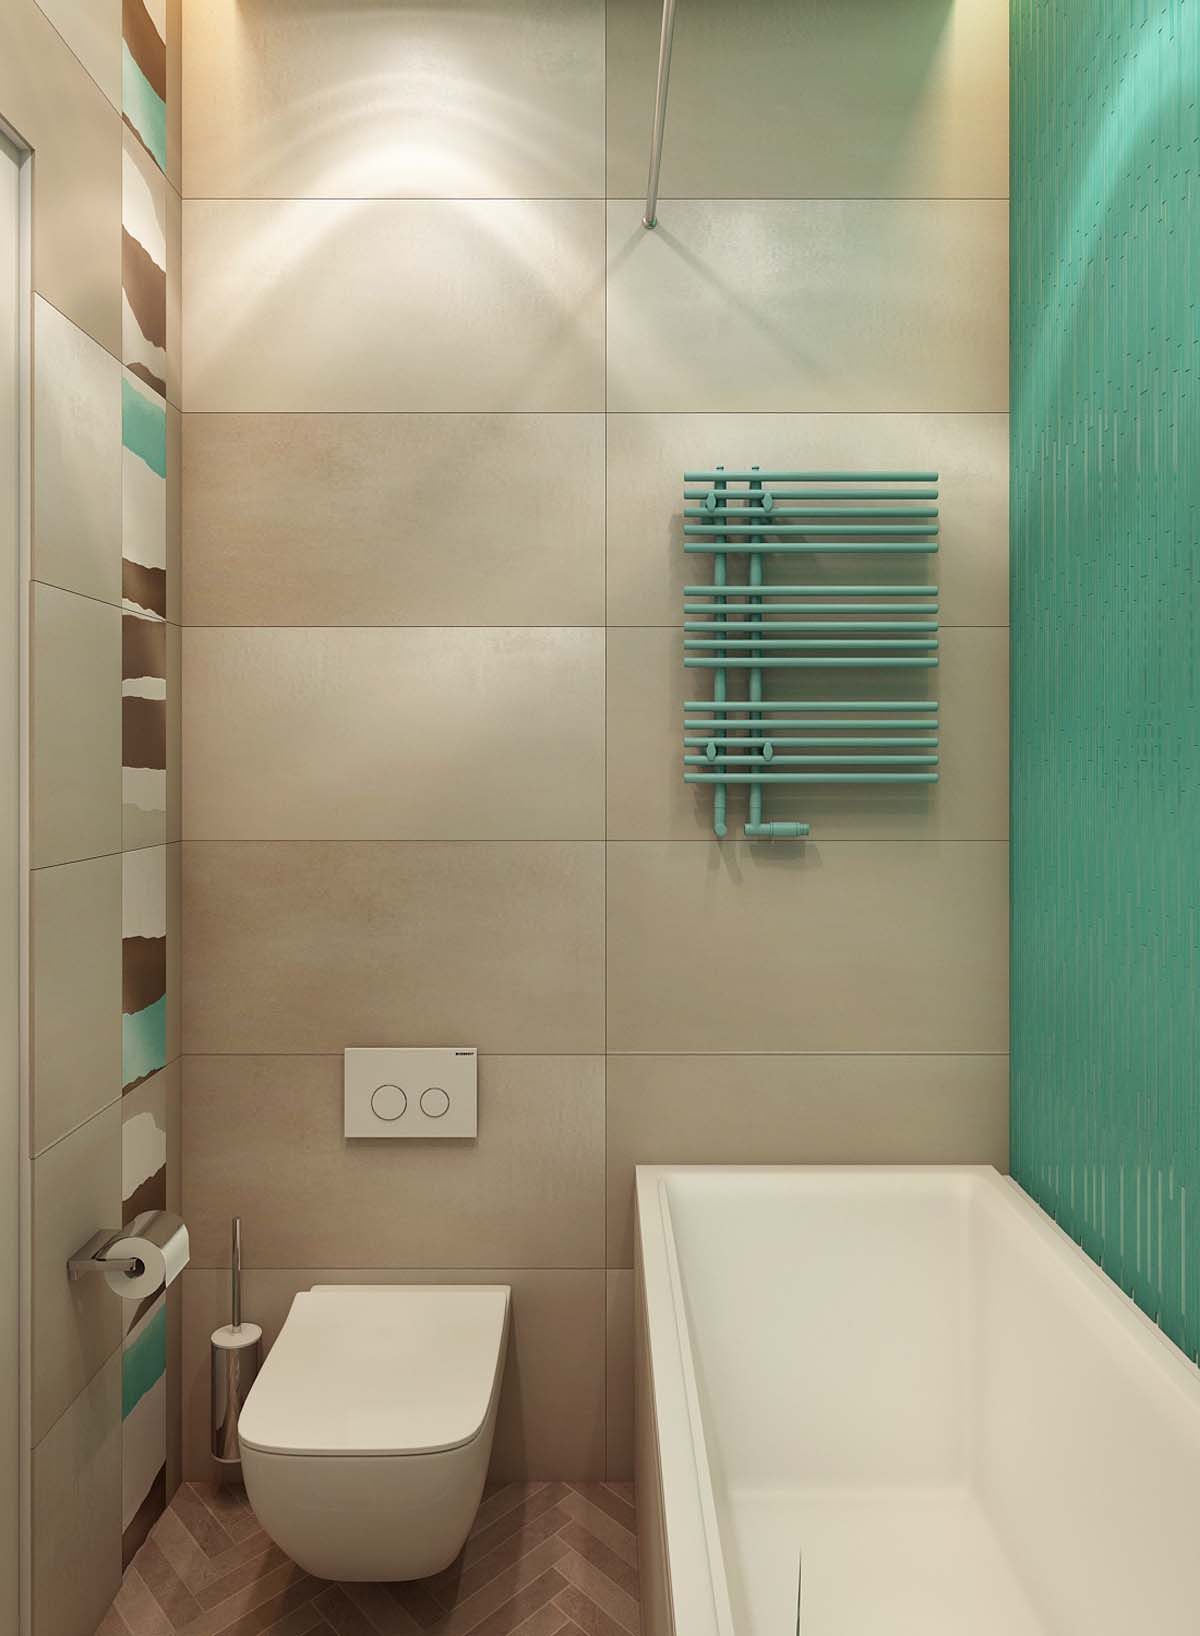 Small Bathroom Design - A simple modern apartment in moscow